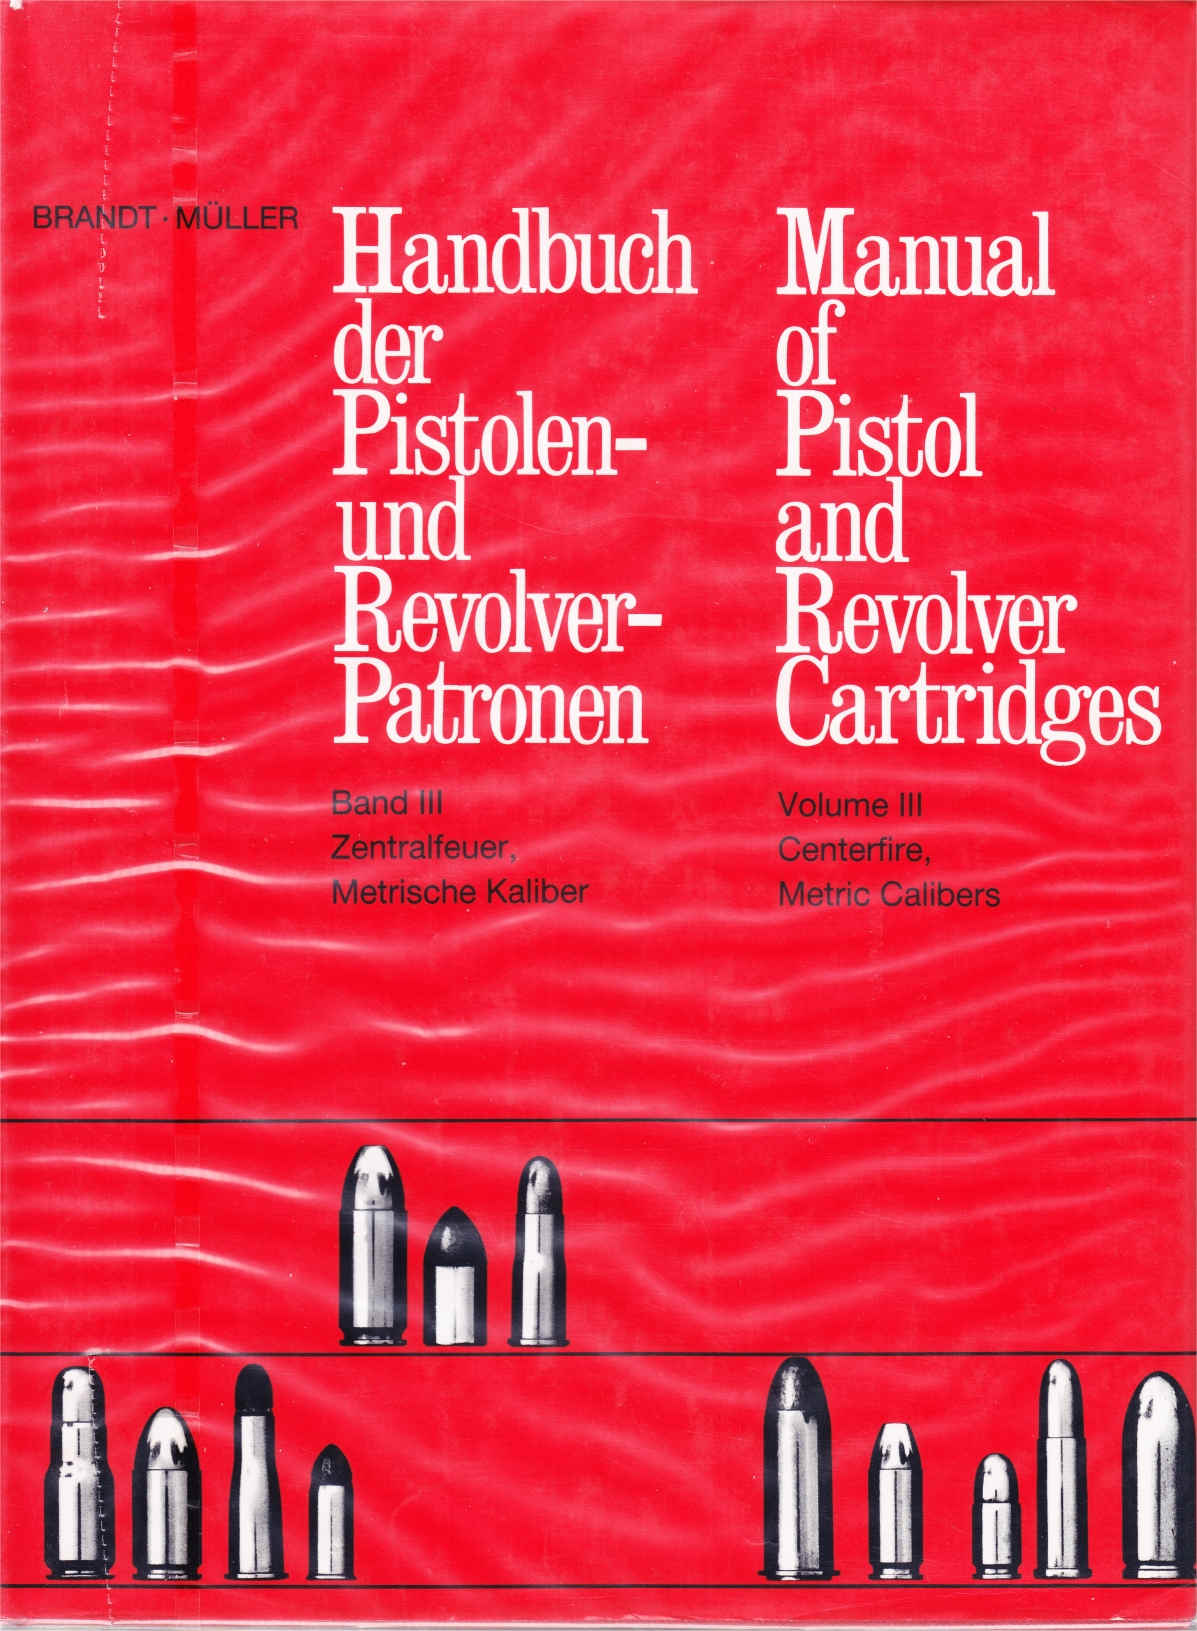 Brandt Manual of pistol and Revolver Cartridges Ed.1 Vol.3